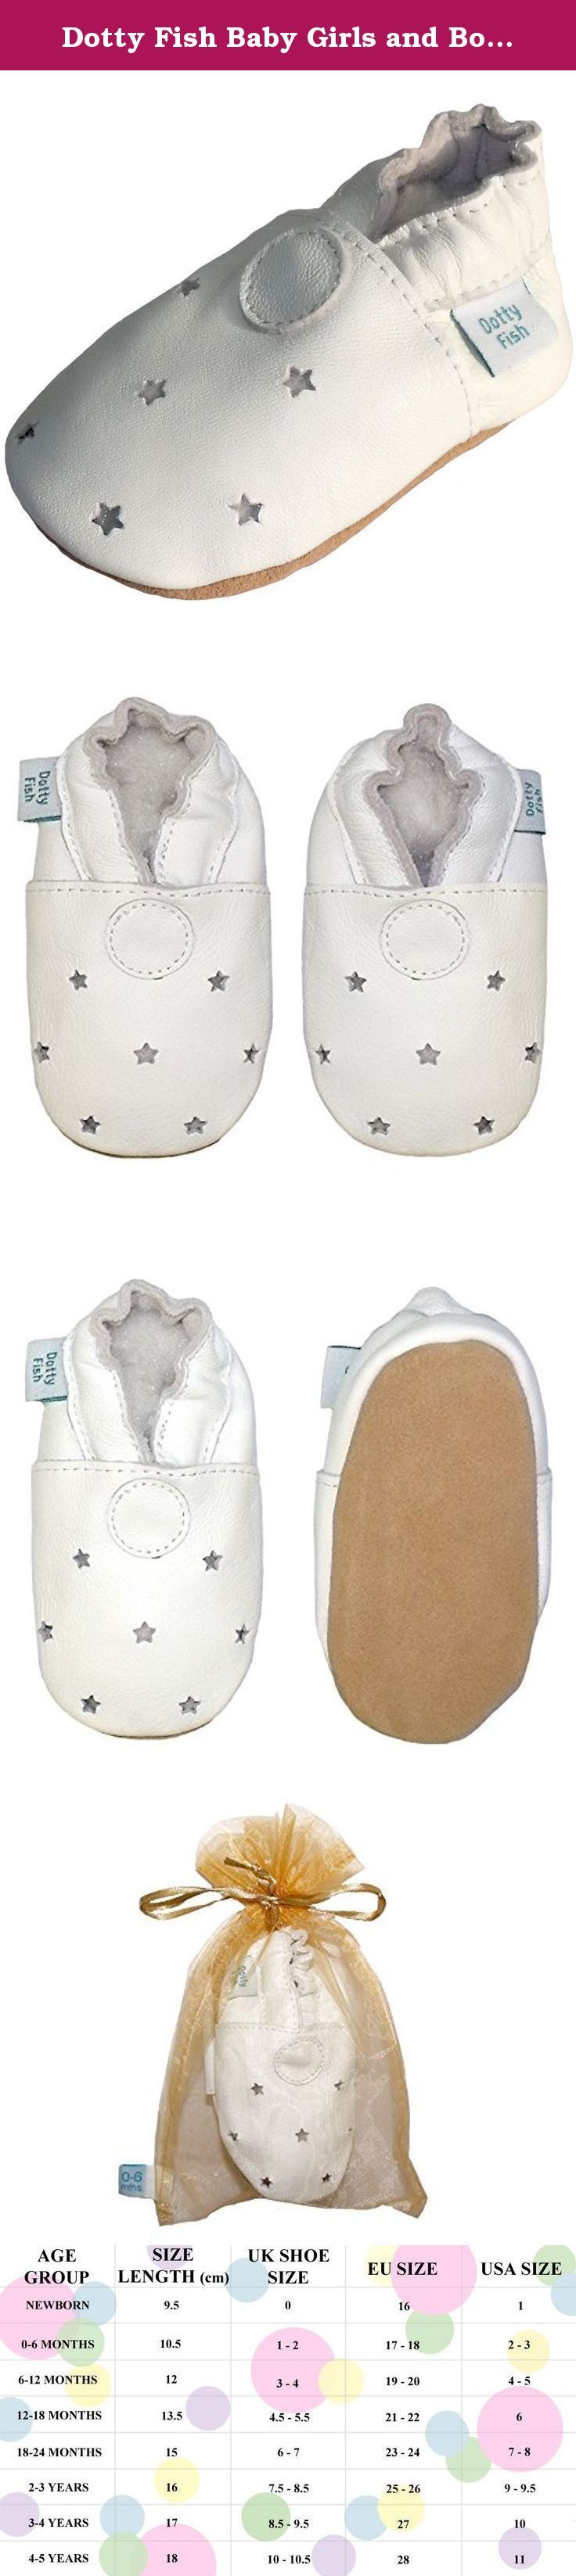 Dotty Fish Baby Girls and Boys Soft Leather Shoe with Suede Soles 3-4 Years White Stars. These baby shoes are made from soft leather and have suede soles with elasticated ankles so they fit really well and don't keep falling off. With non-slip suede soles they are ideal for wooden and laminate floors. All shoes come presented in an organza drawstring bag. All of Dotty Fish leather is chrome free and is tested at a laboratory before the shoes are made to ensure that the leather is safe…